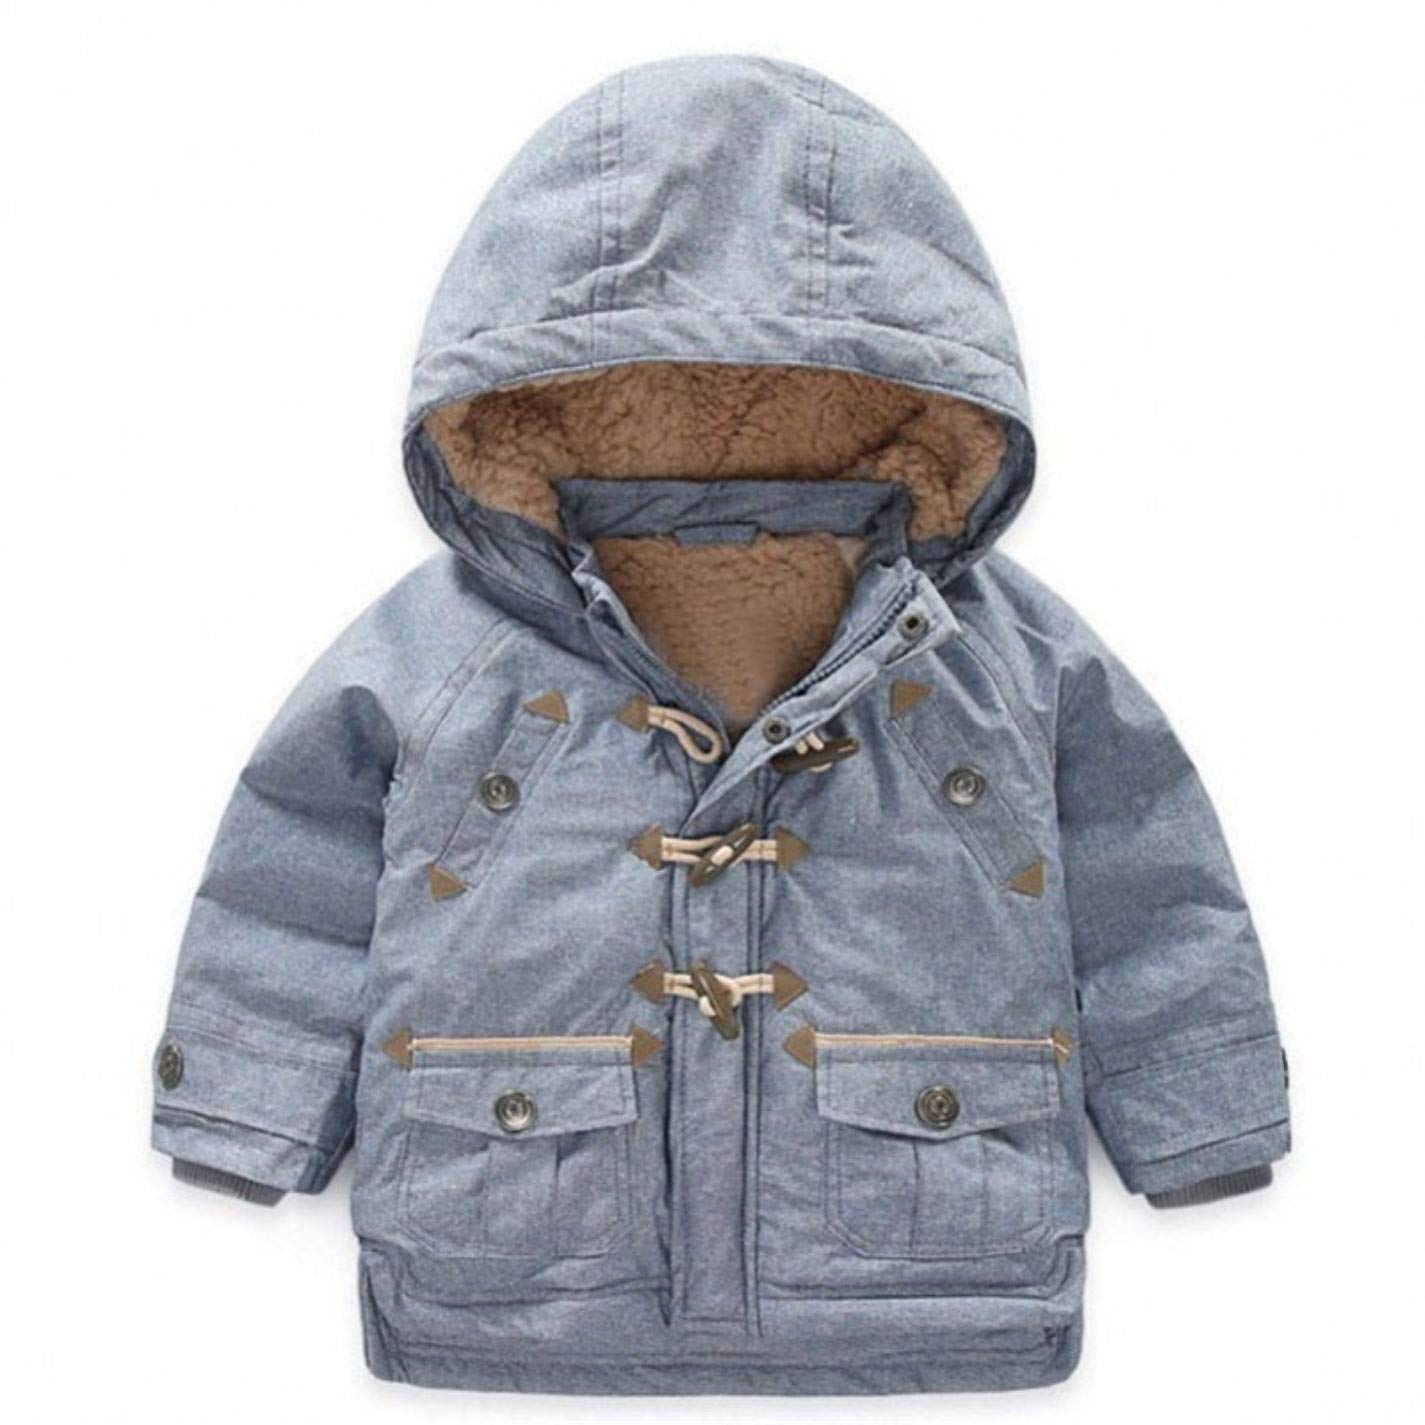 LzCxZDKN Boy Warm Horns Thickening Overcoat Autumn Baby Boy Jacket